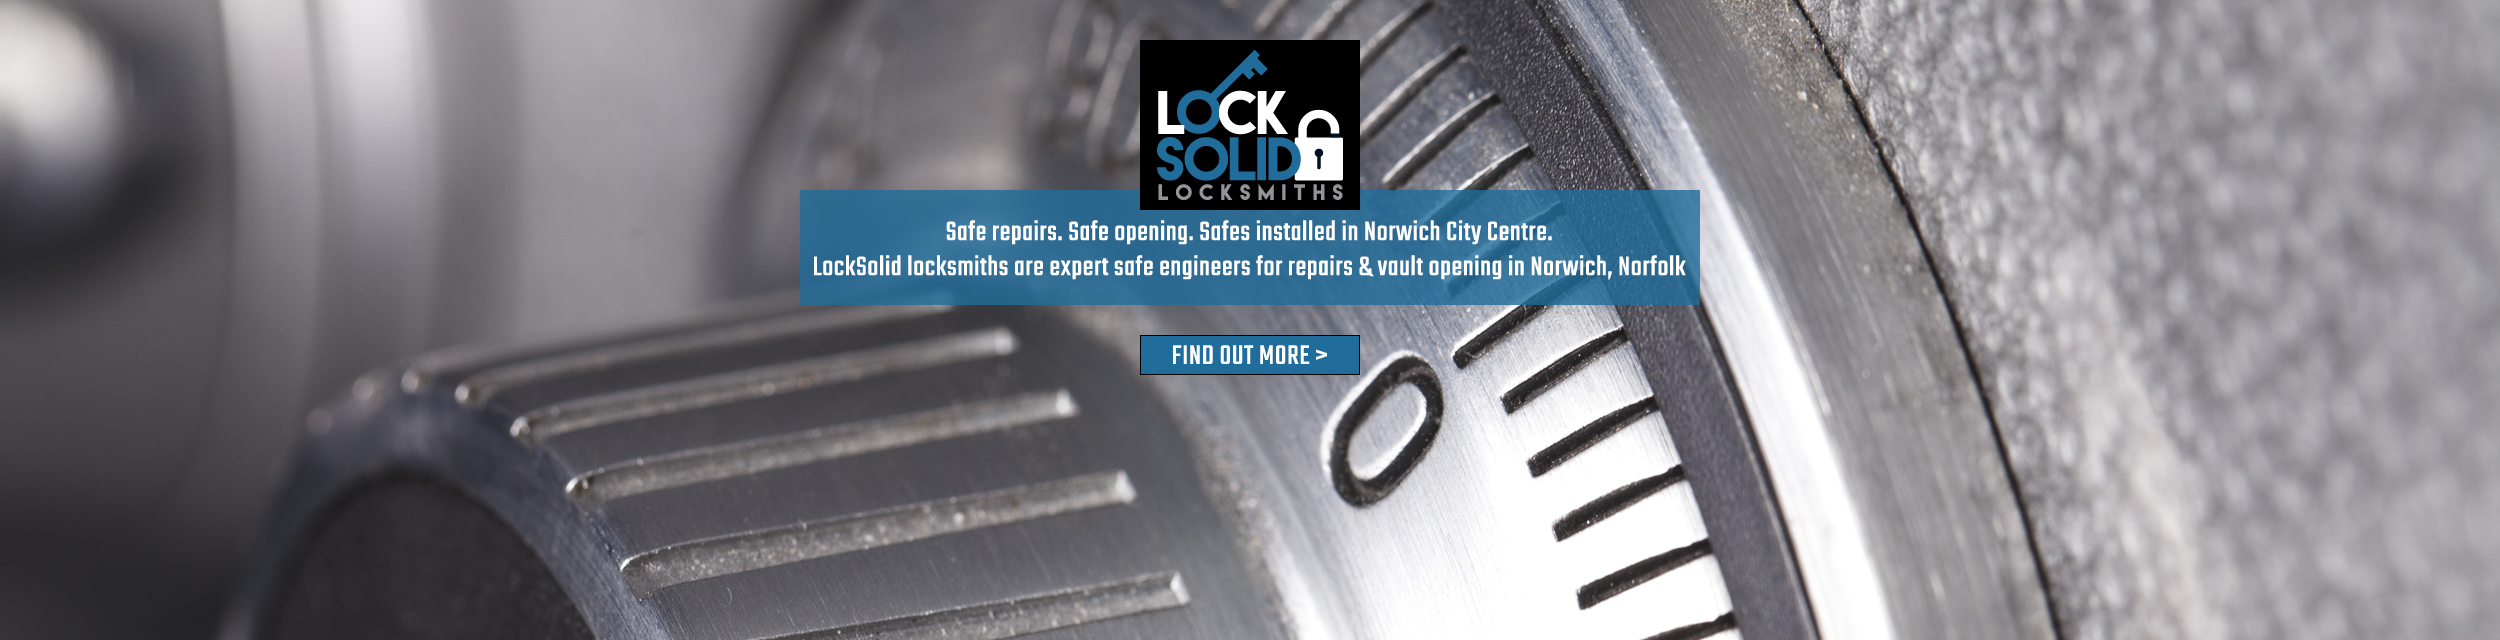 safe-locksmiths-banner